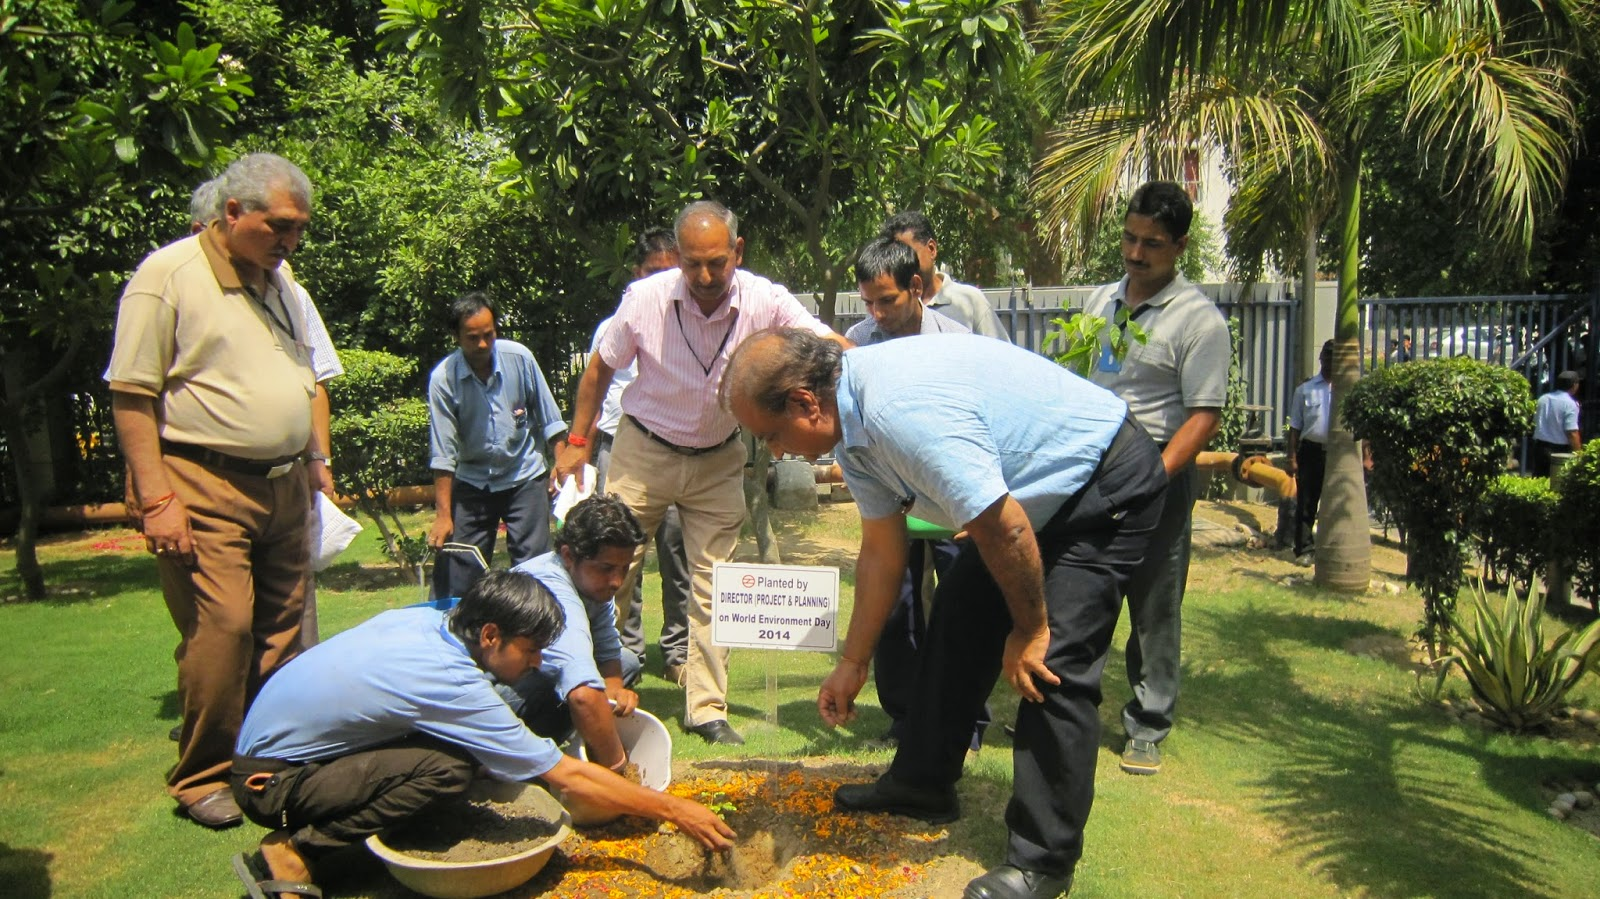 Sandal wood tree being planted by the Director Projects and Planning, DMRC